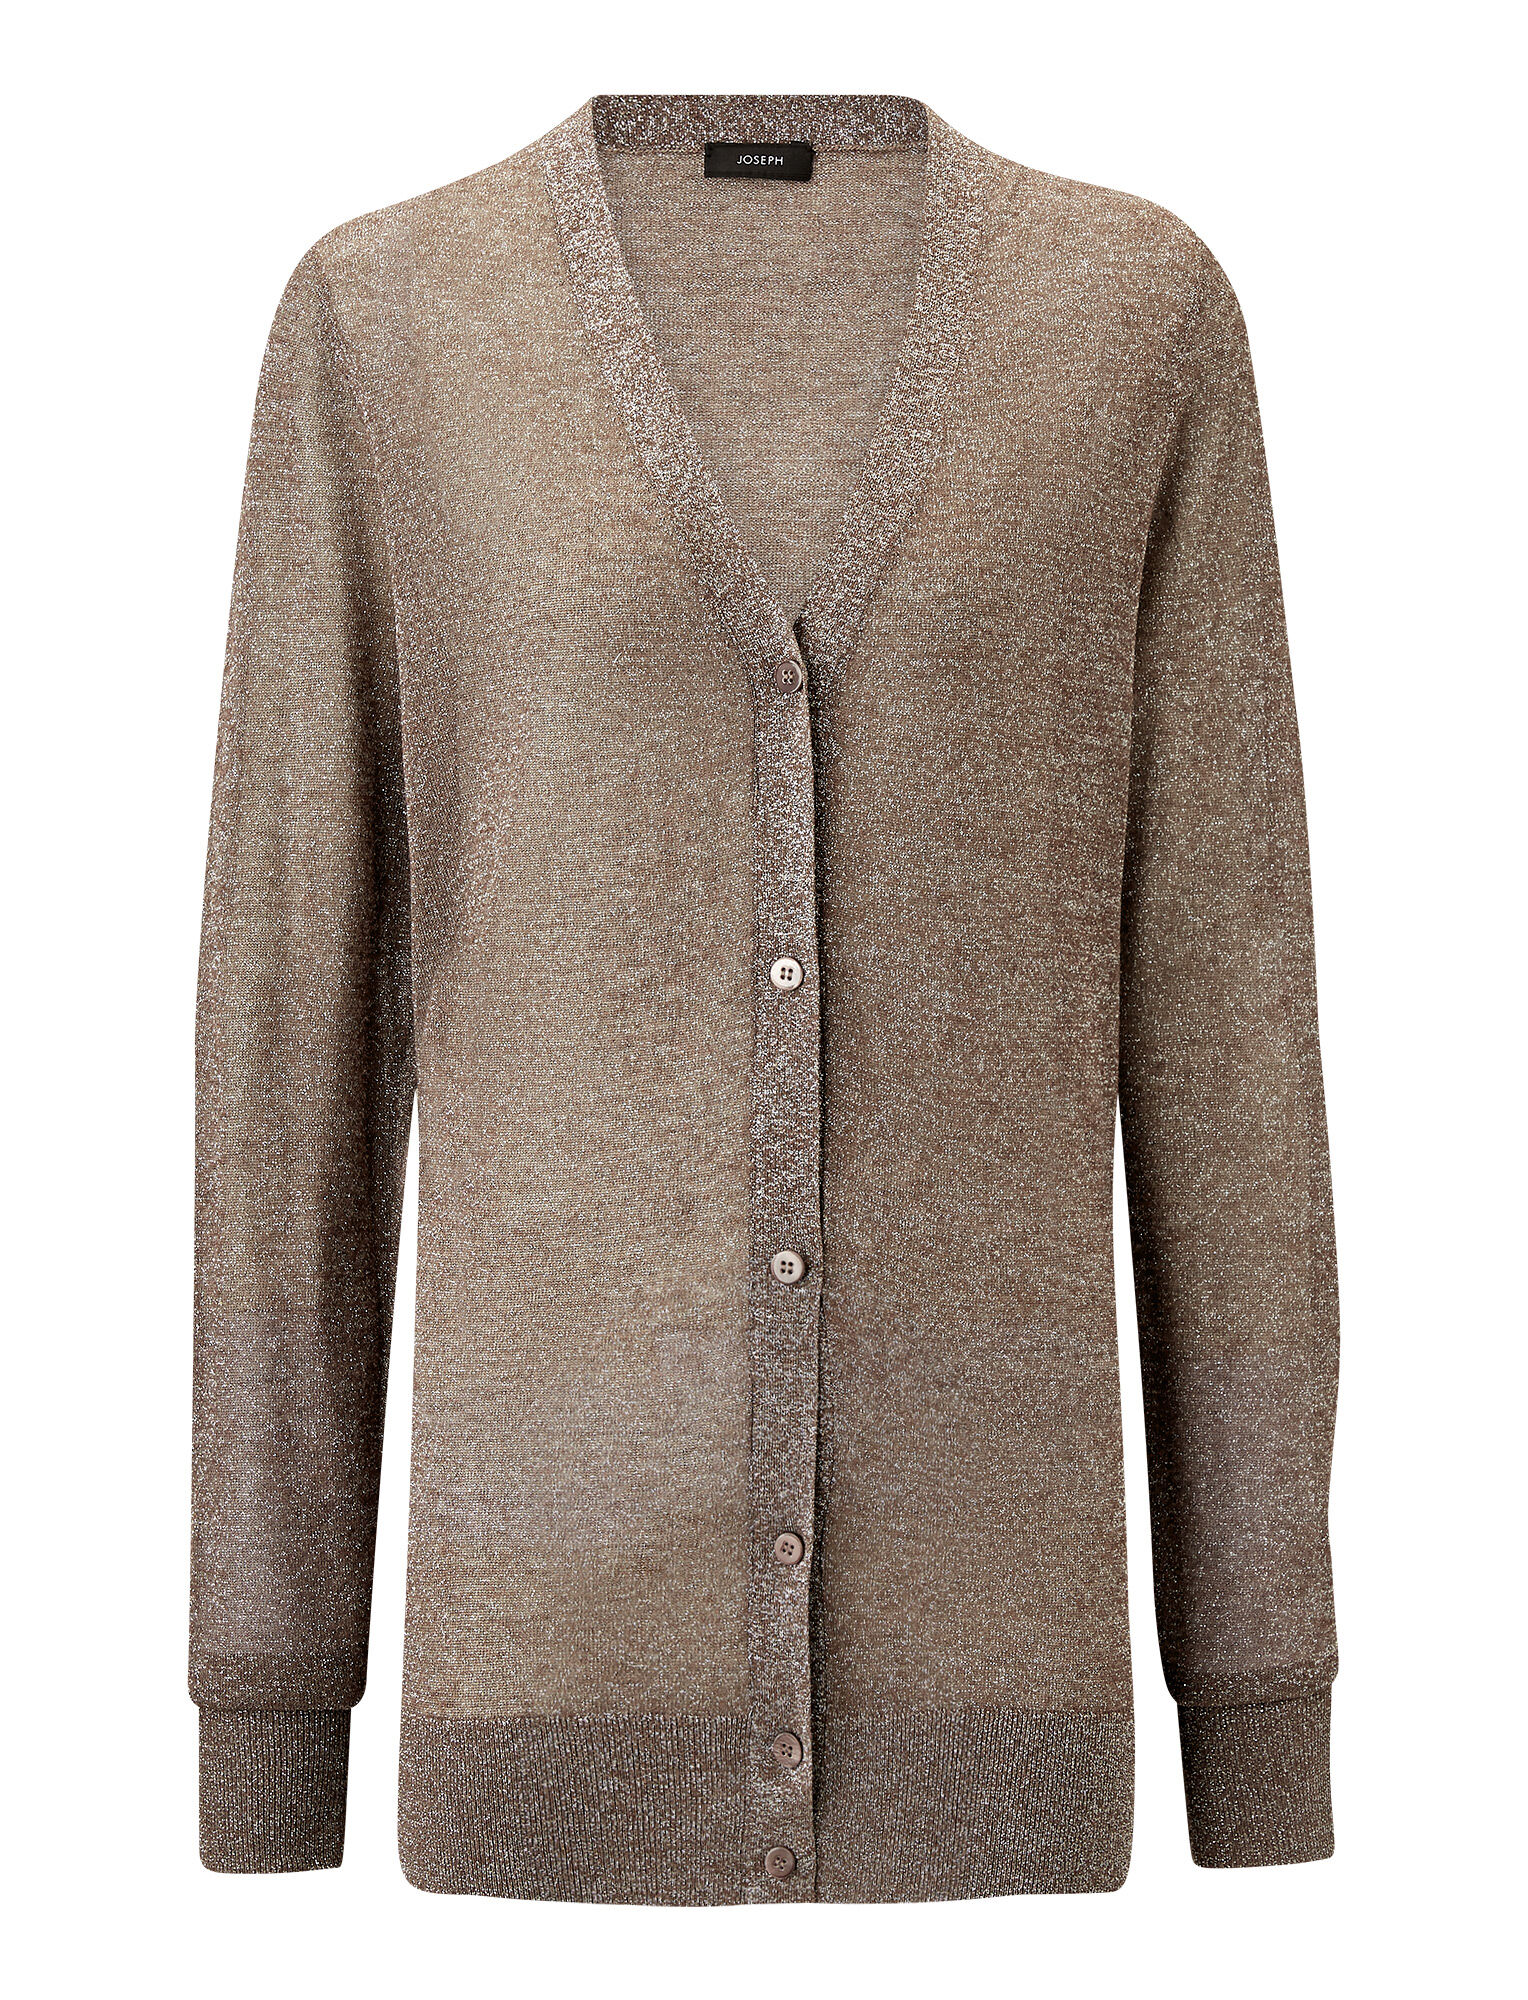 Joseph, Cardigan Lurex Knit, in QUARTZ